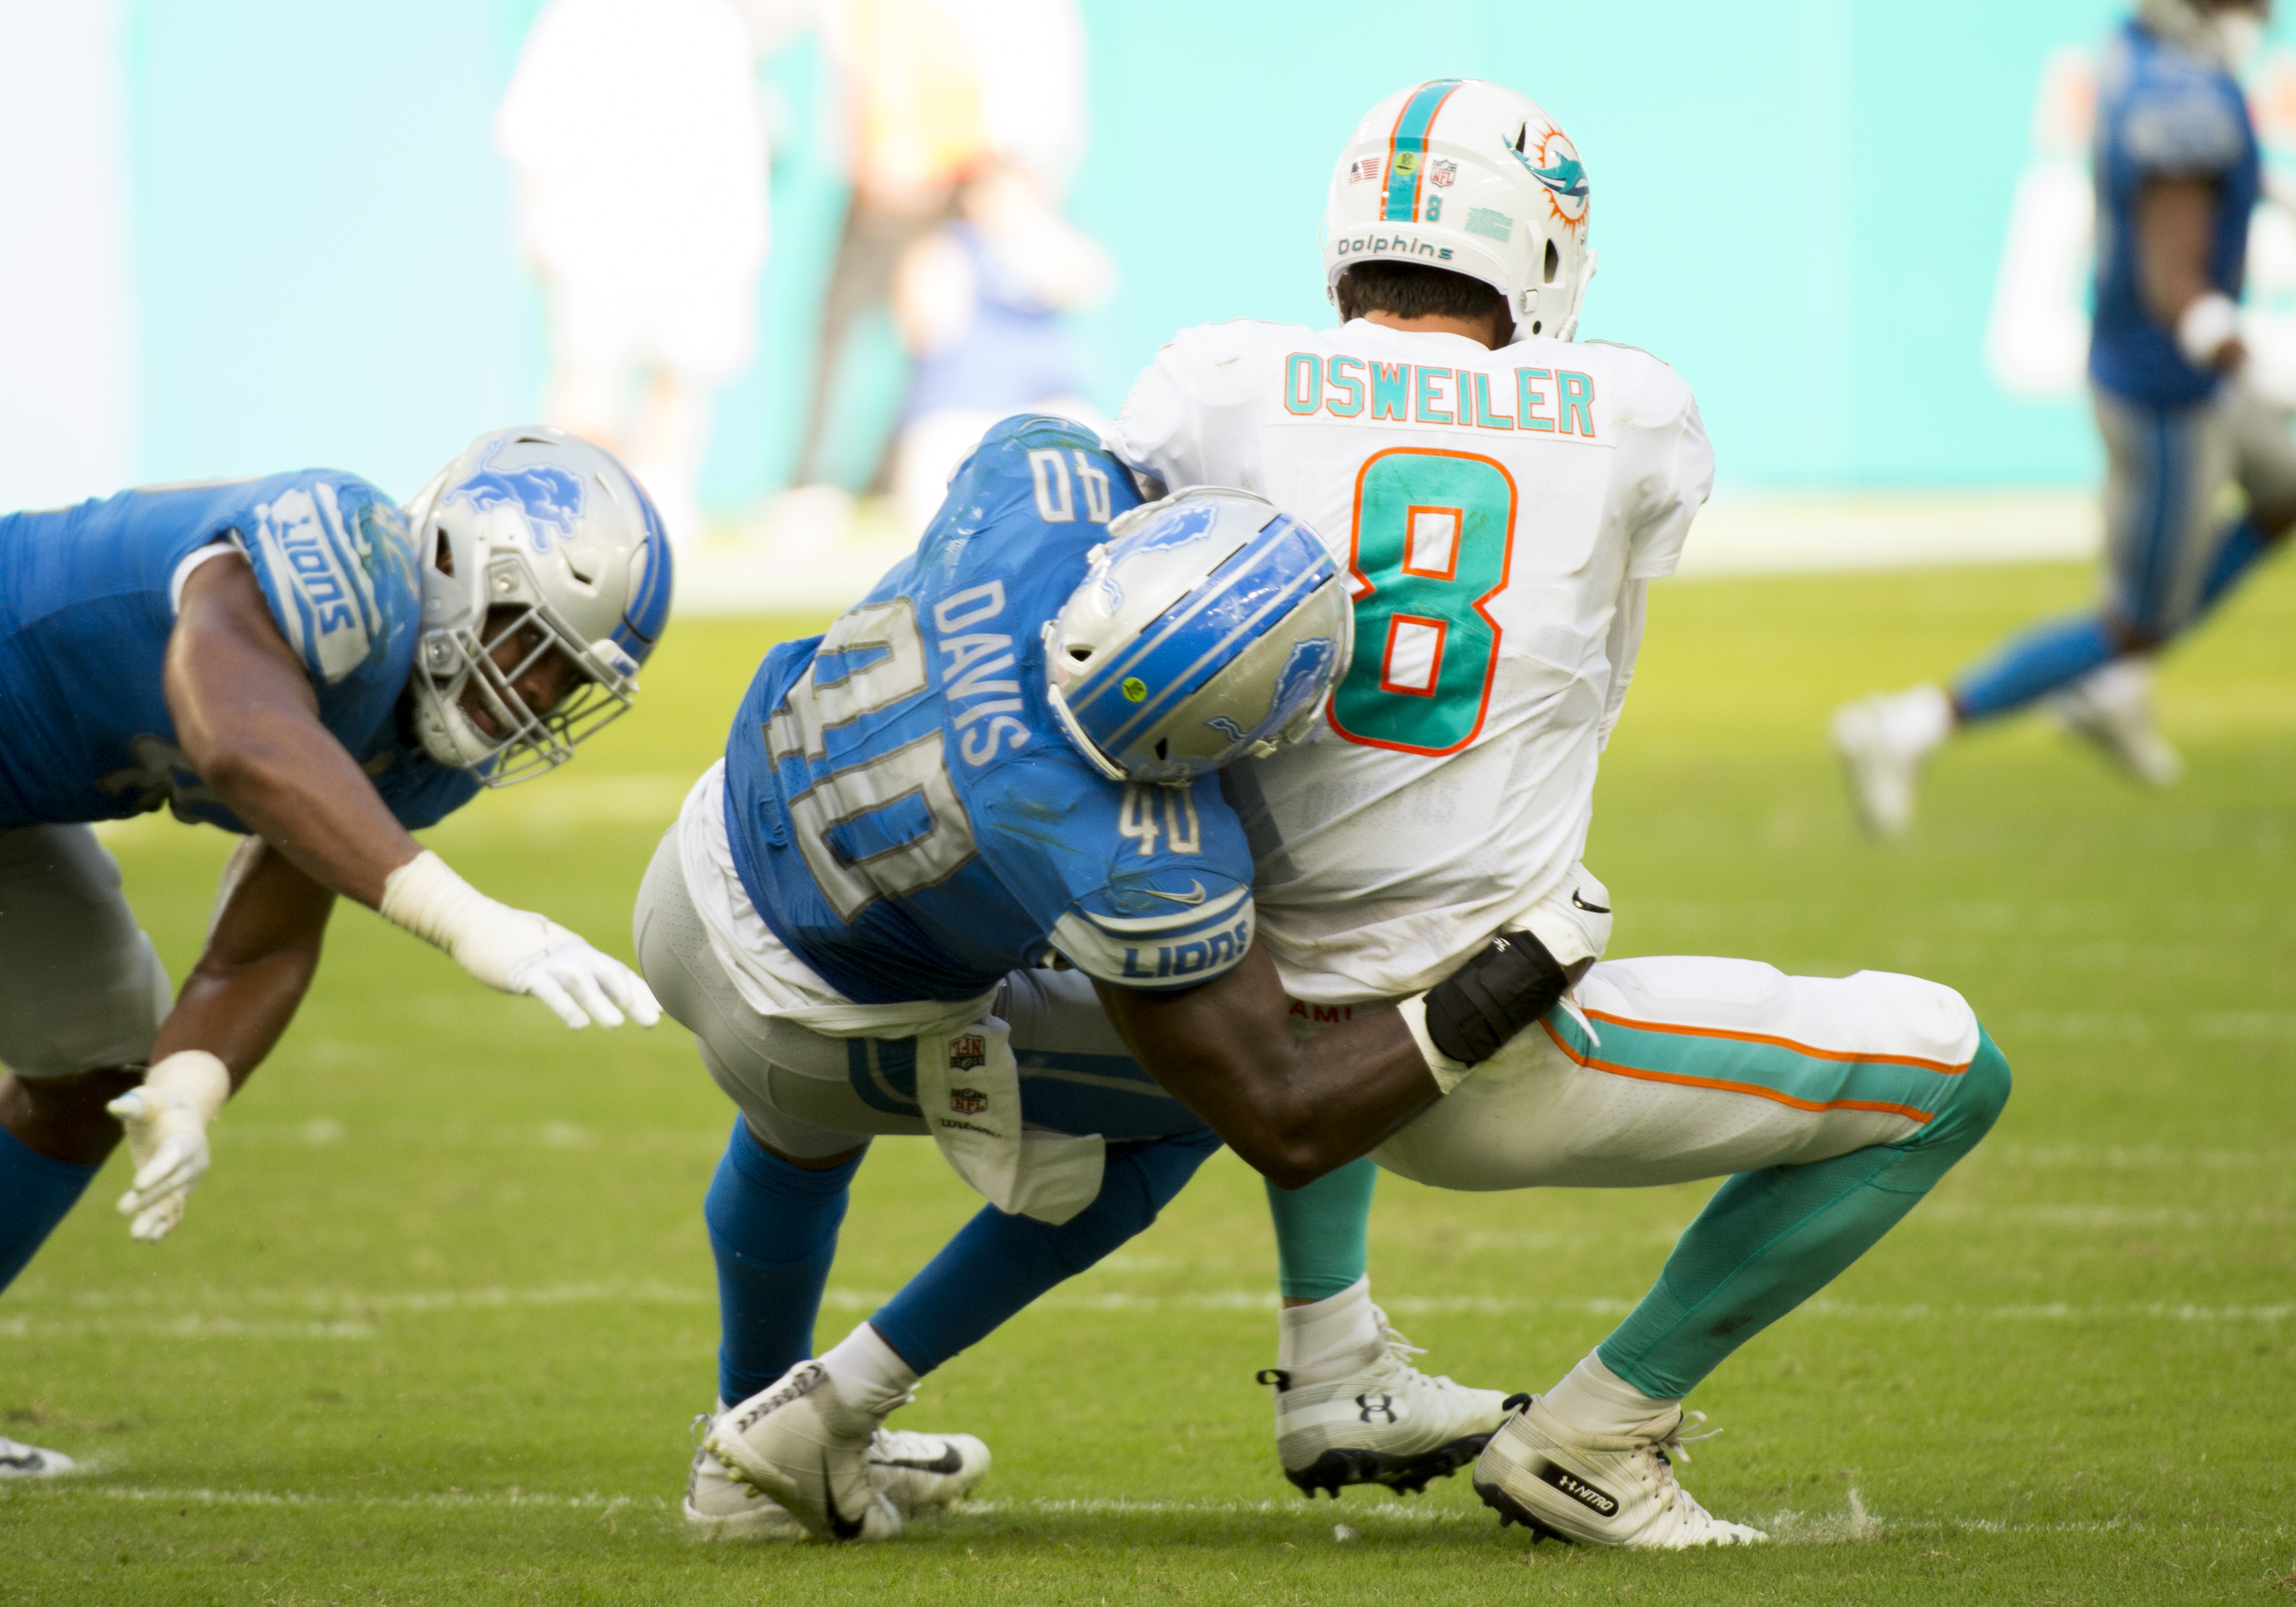 NFL: OCT 21 Lions at Dolphins